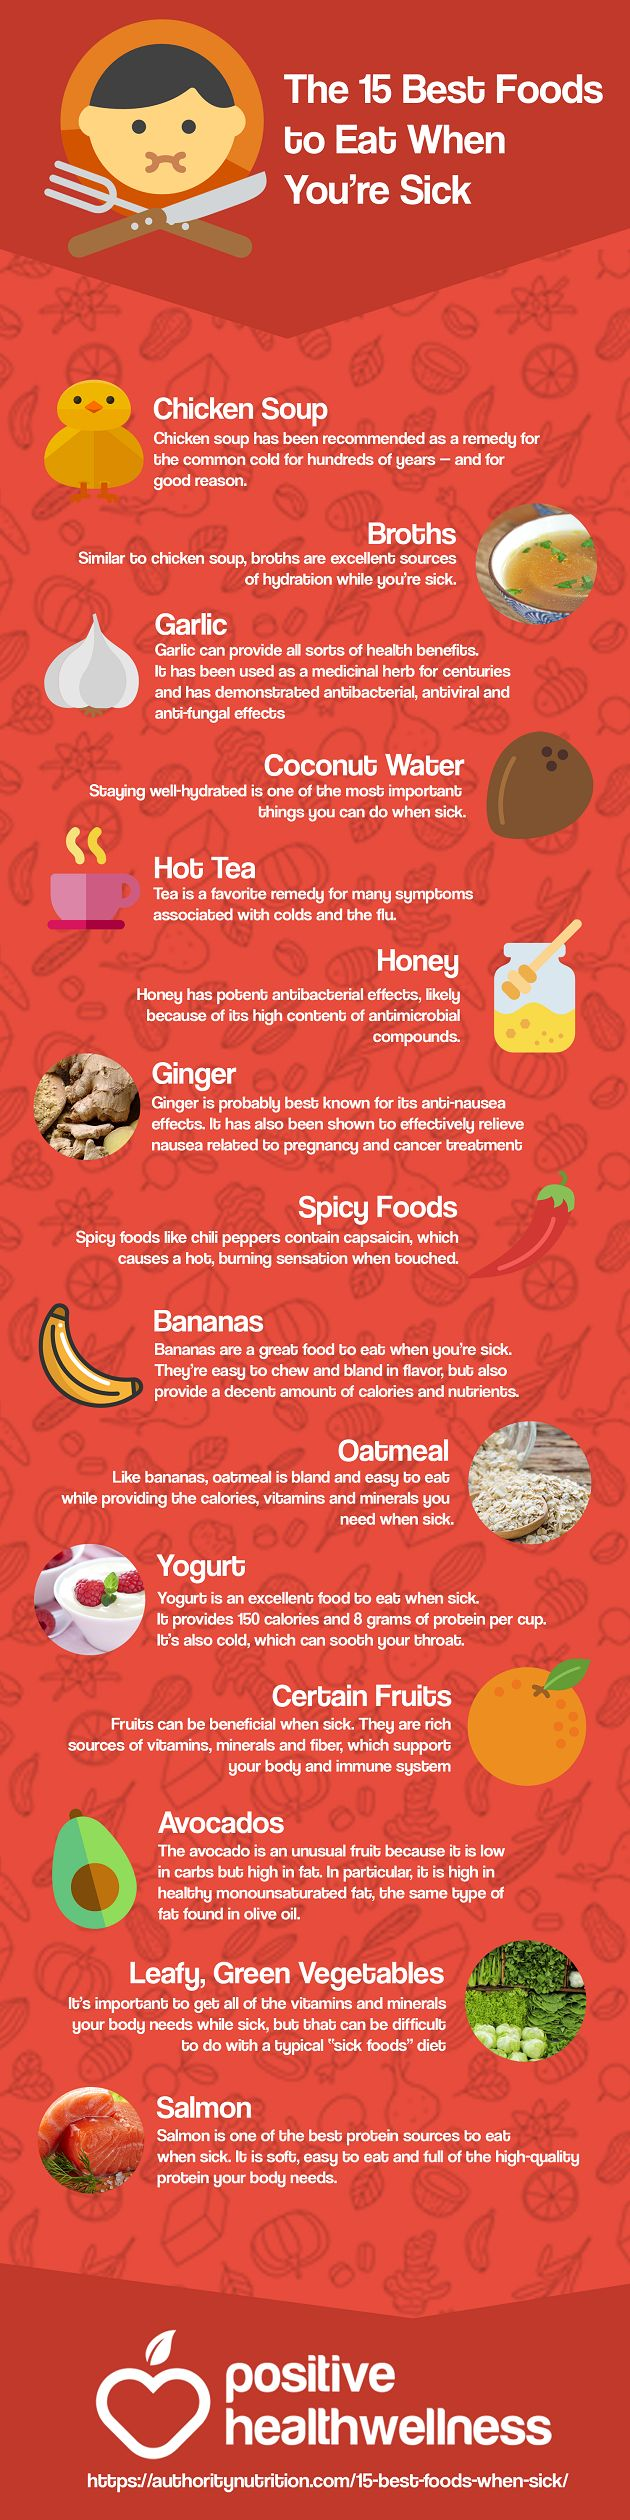 The 15 Best Foods to Eat When You're Sick – Positive Health Wellness Infographic